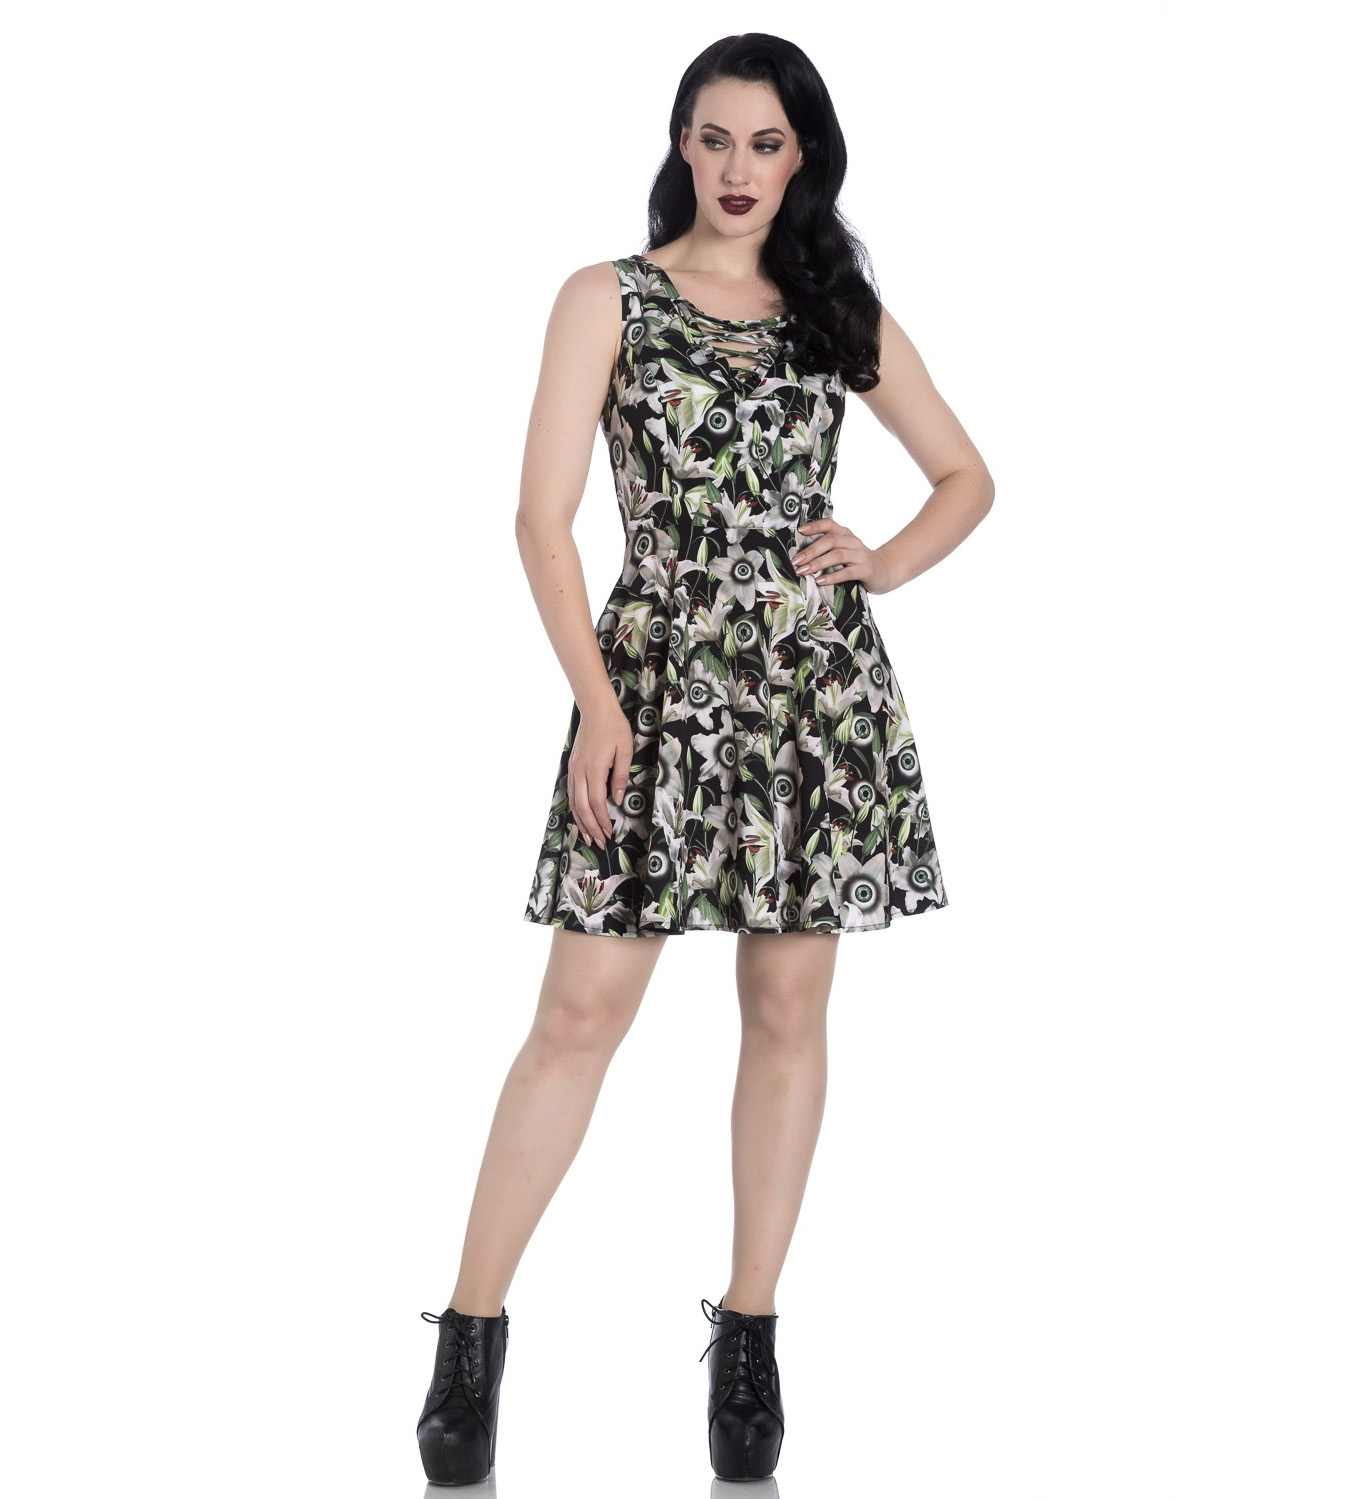 Hell-Bunny-Black-Lace-Up-Goth-Punk-Mini-Dress-PEEPERS-Eyeballs-Flowers-All-Sizes thumbnail 27